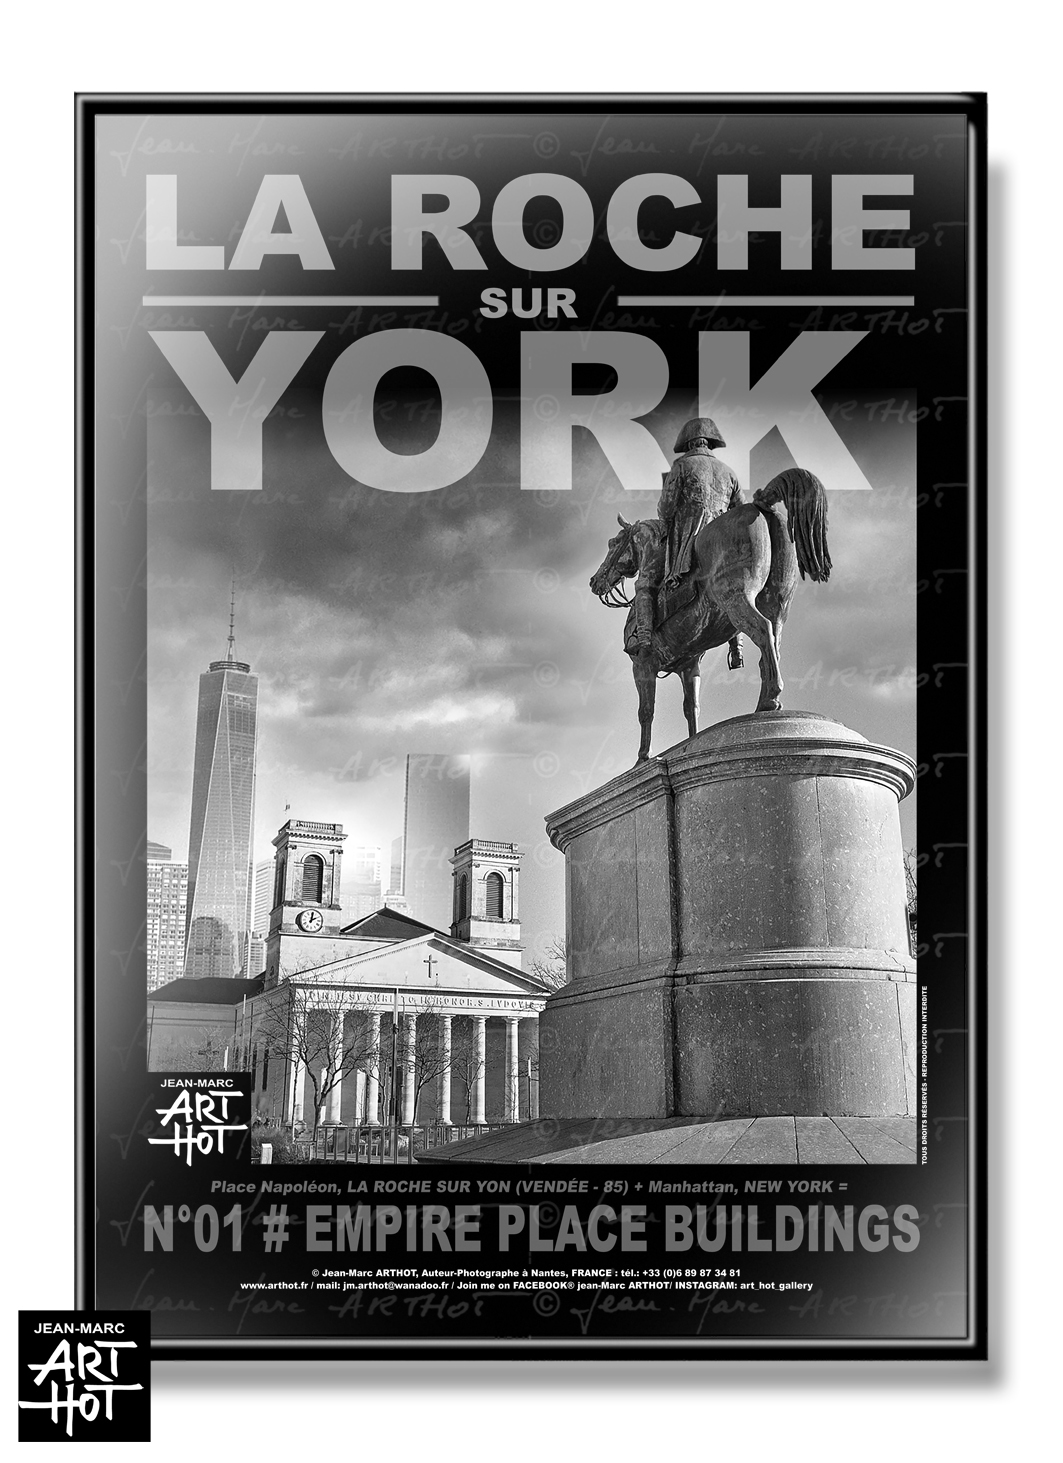 AFFICHE « LA ROCHE SUR YORK » - N°01-Empire Place Buildings